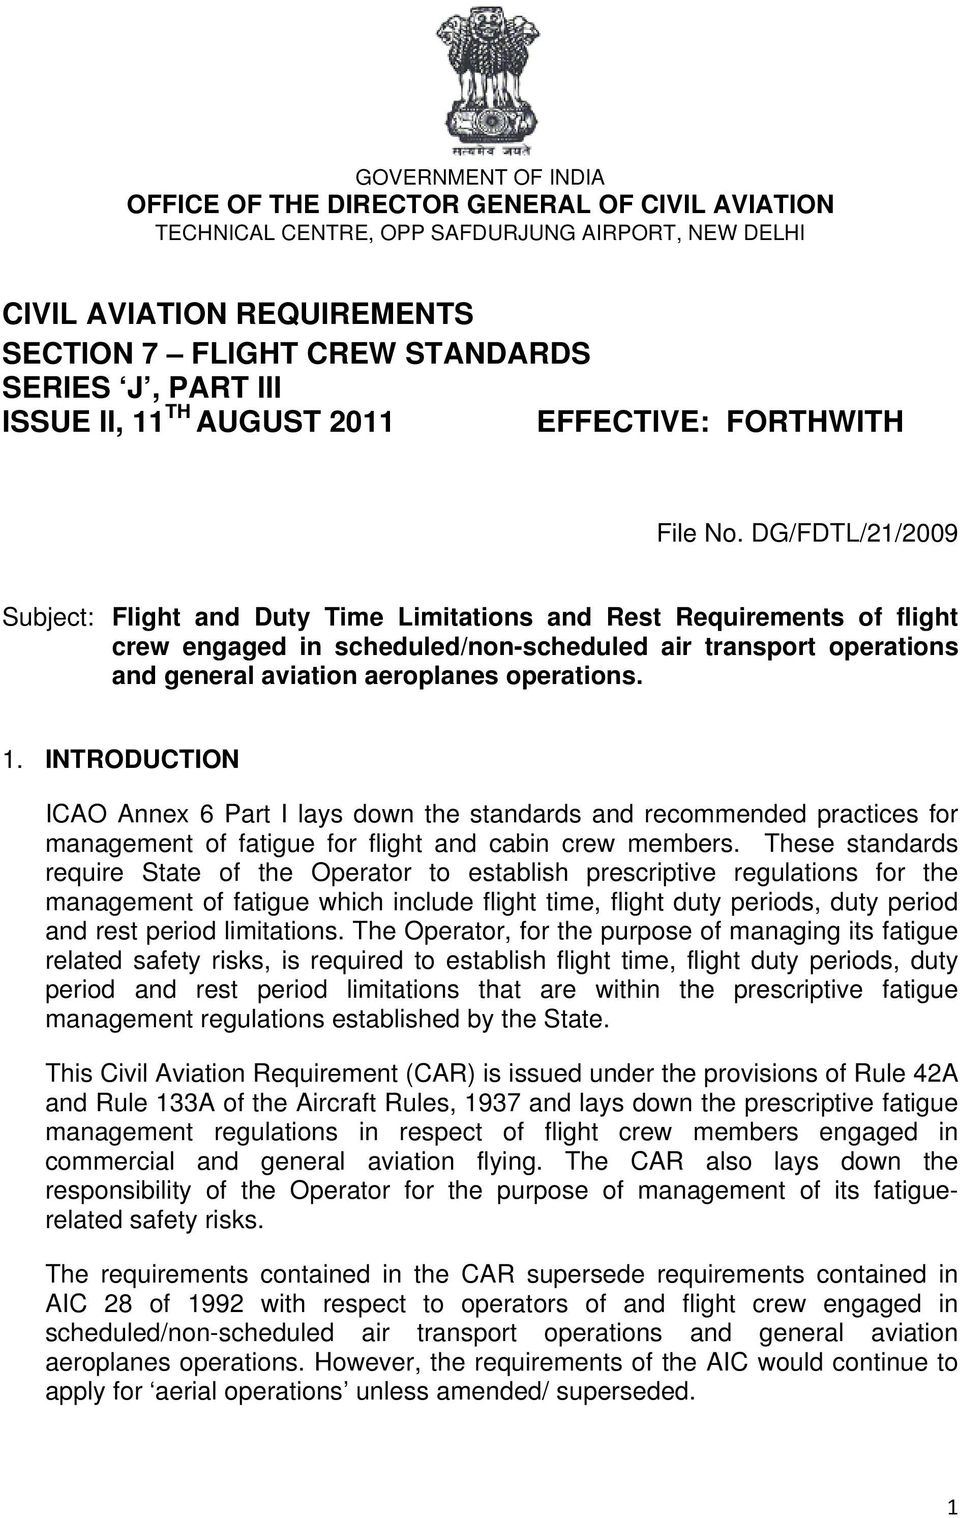 DG/FDTL/21/2009 Subject: Flight and Duty Time Limitations and Rest Requirements of flight crew engaged in scheduled/non-scheduled air transport operations and general aviation aeroplanes operations.